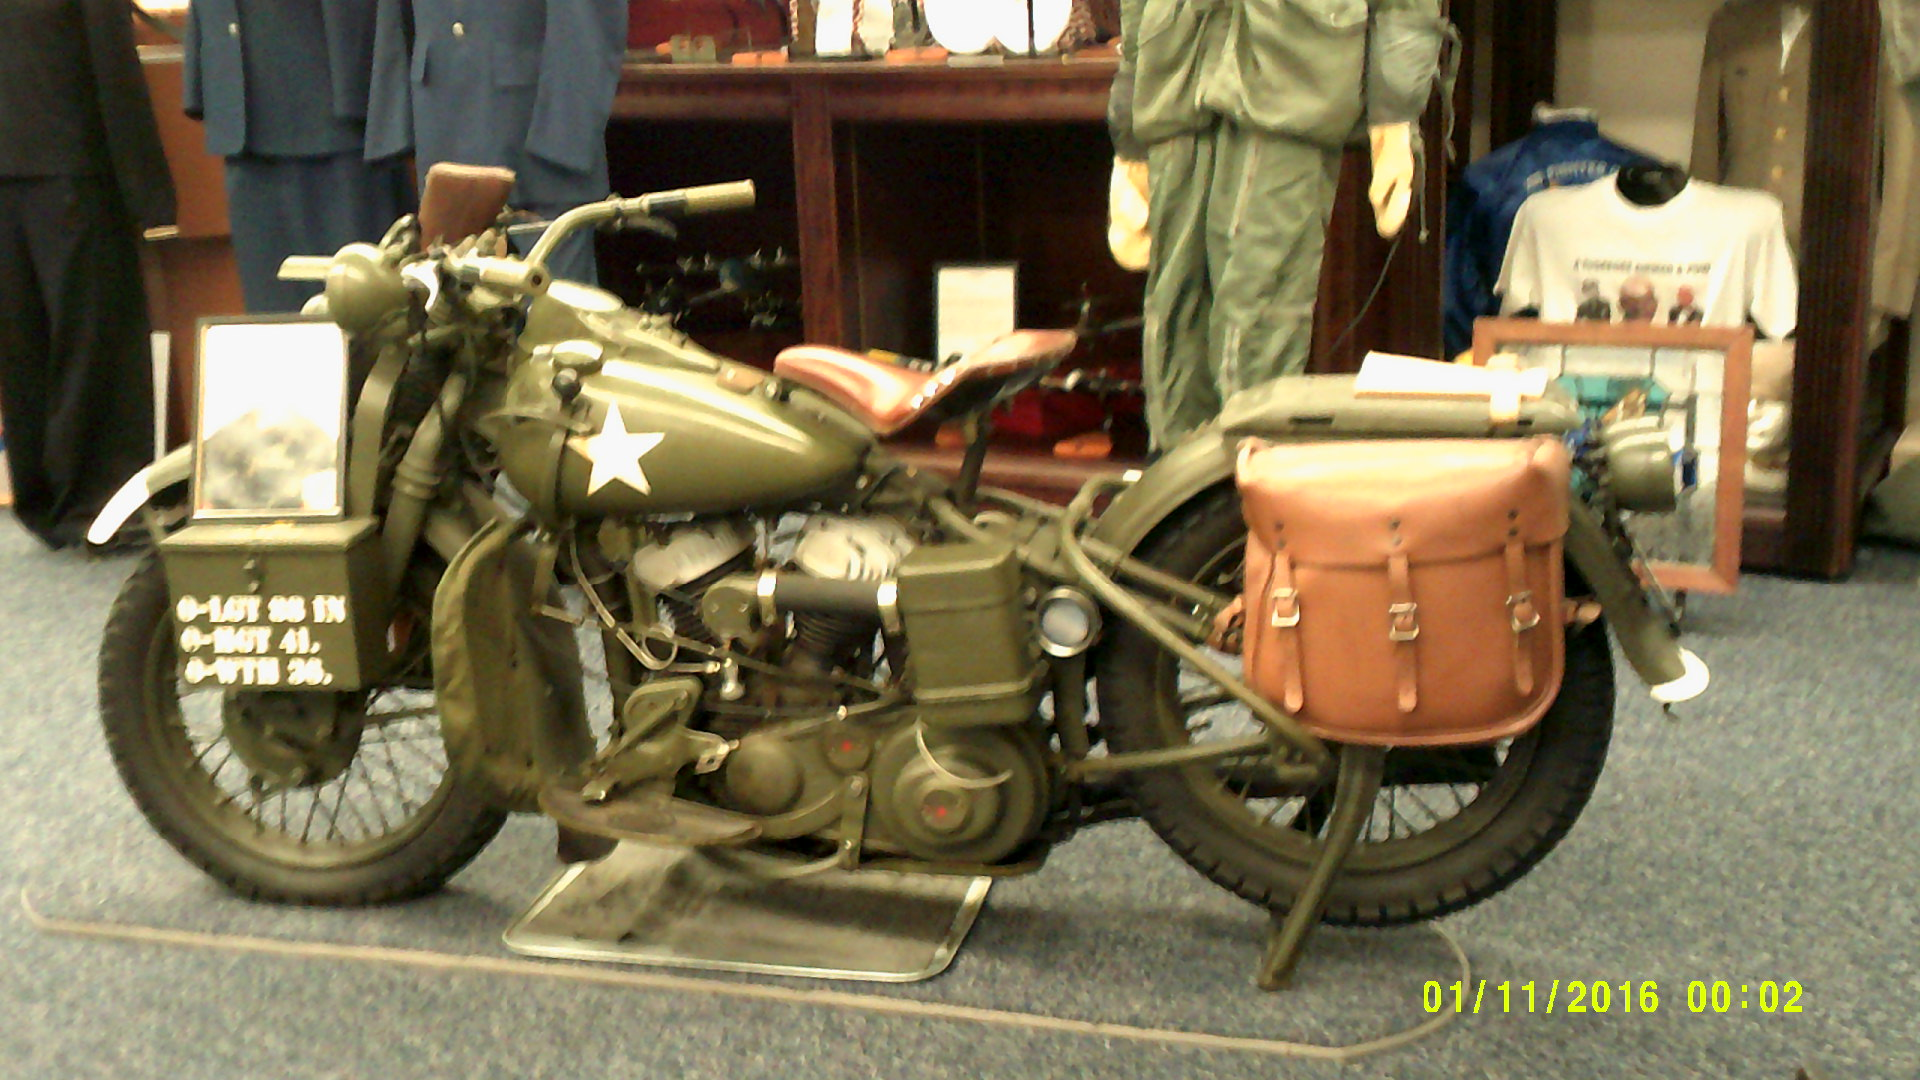 1943 Harley Davidson WLC Army messenger Motorcycle with a 45 CI (cubic inch) Flathead motor.